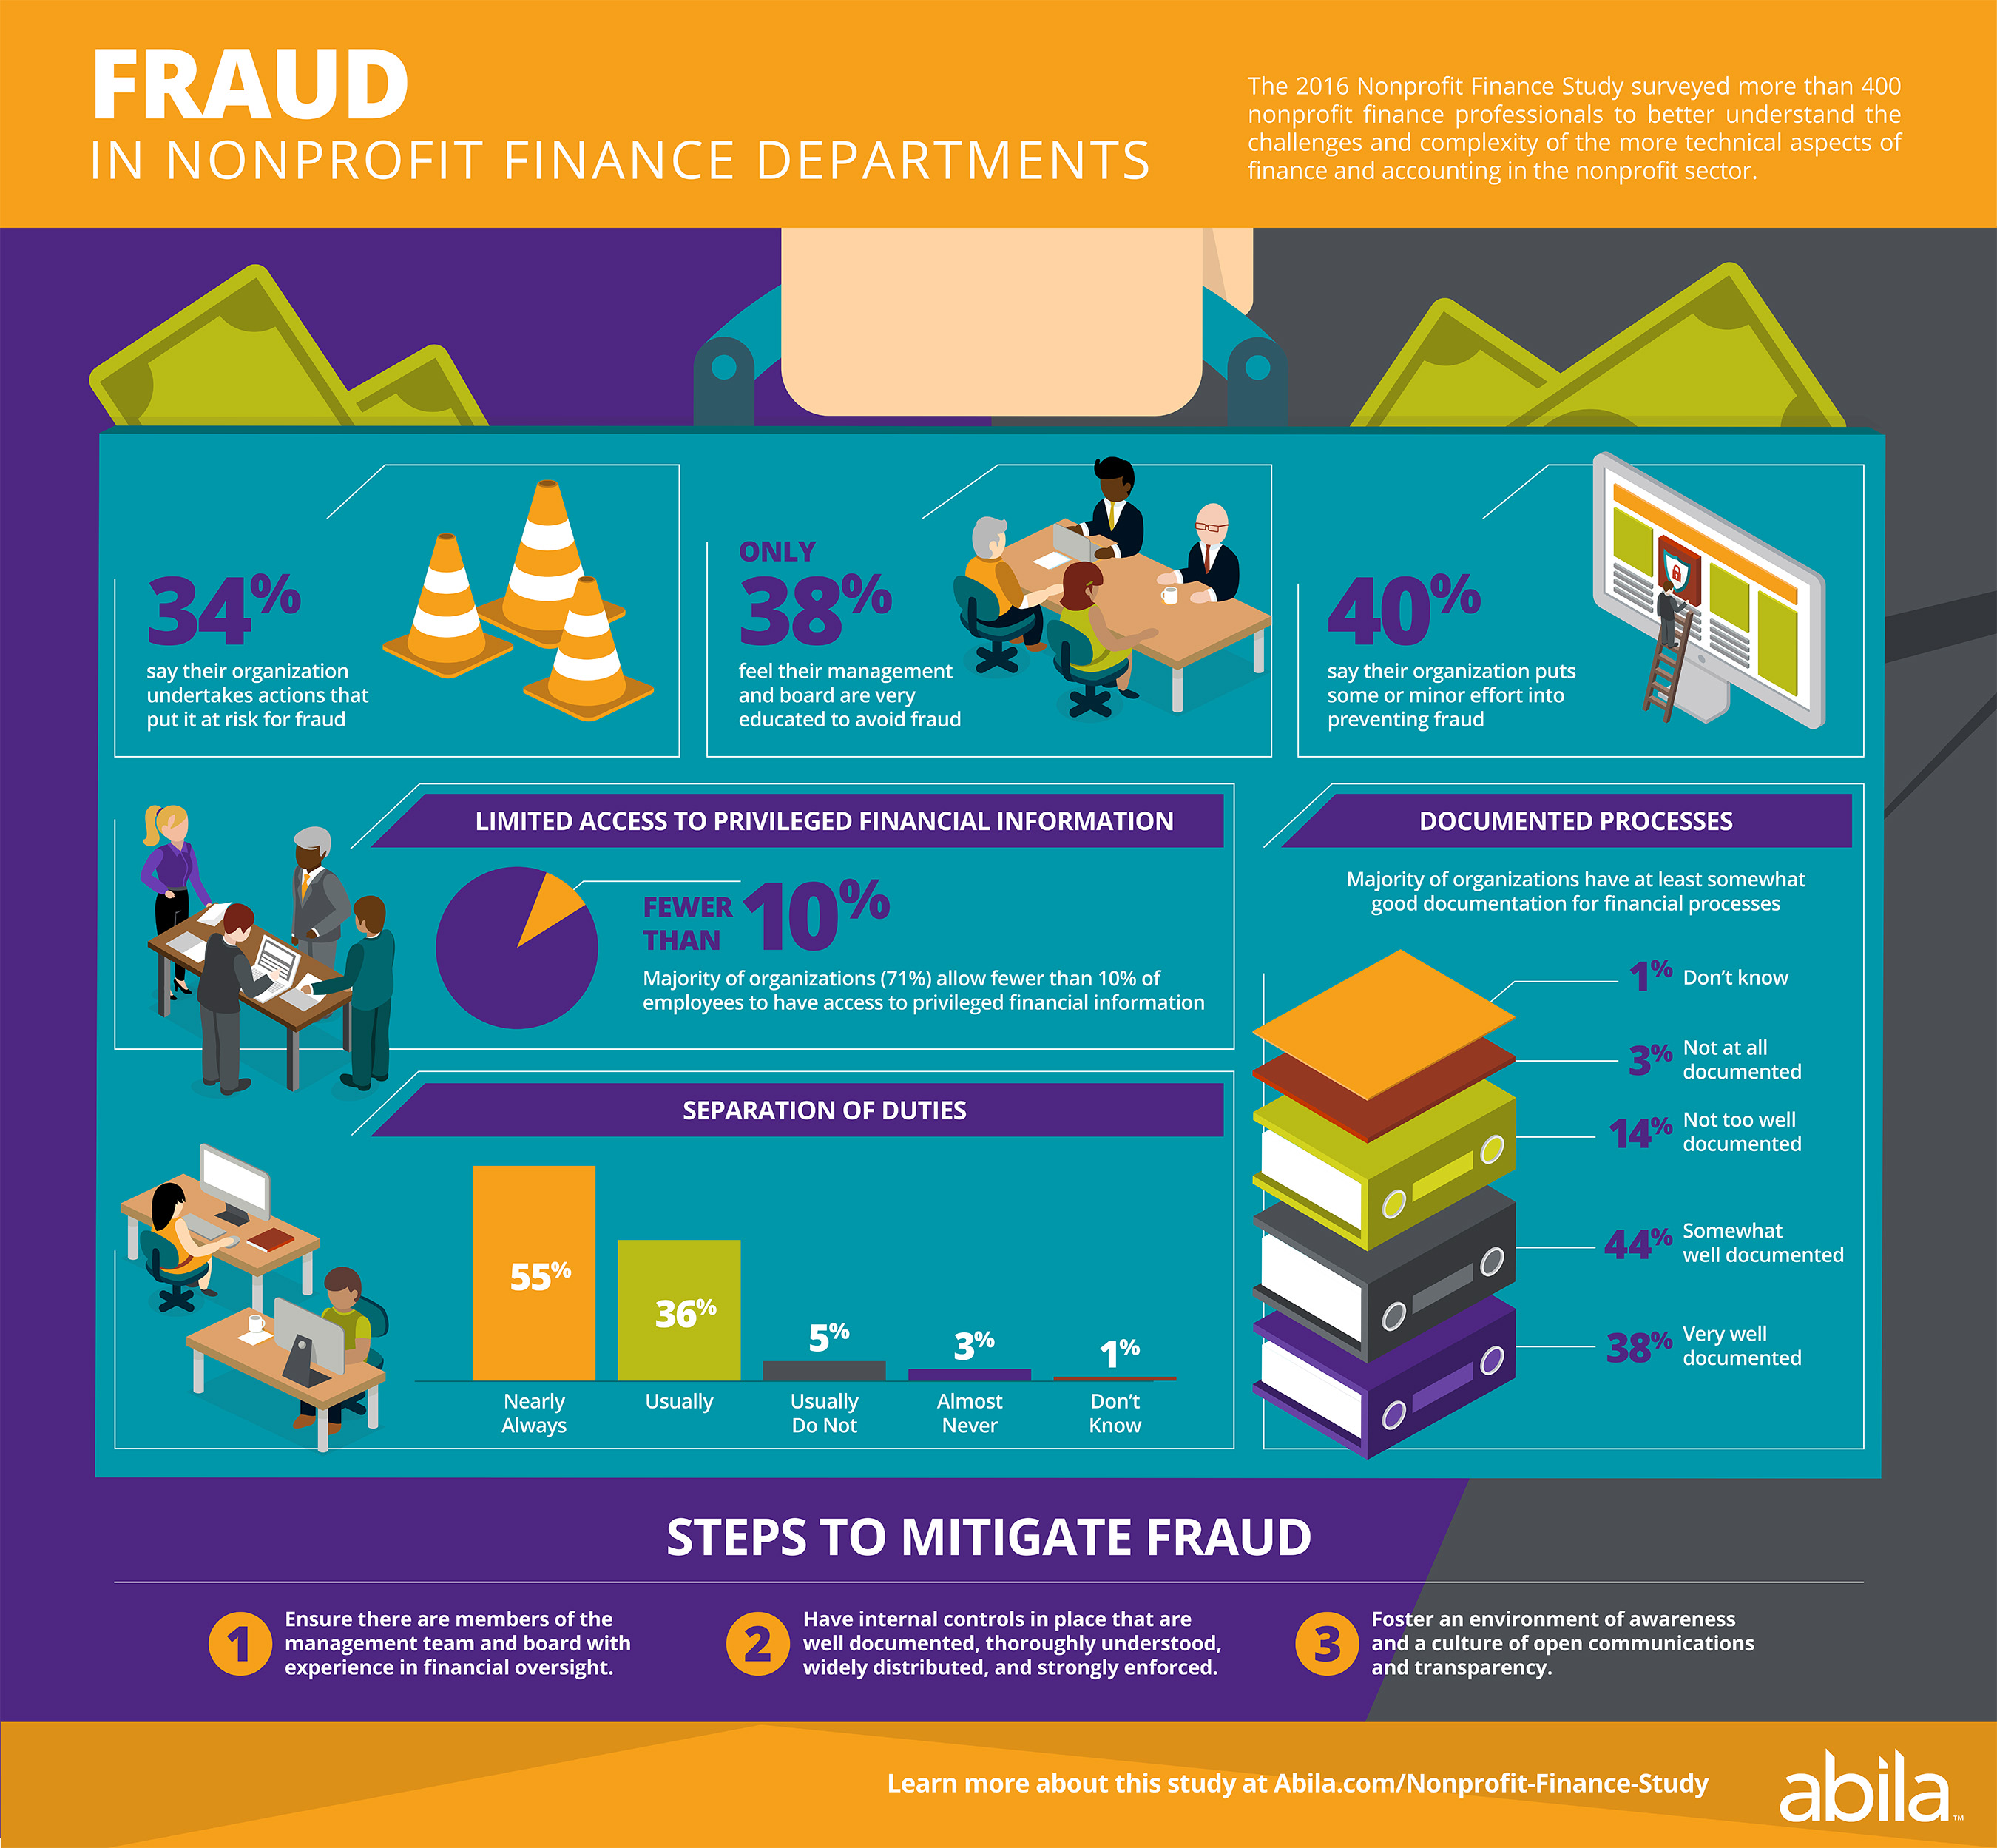 Fraud in Nonprofits Infographic